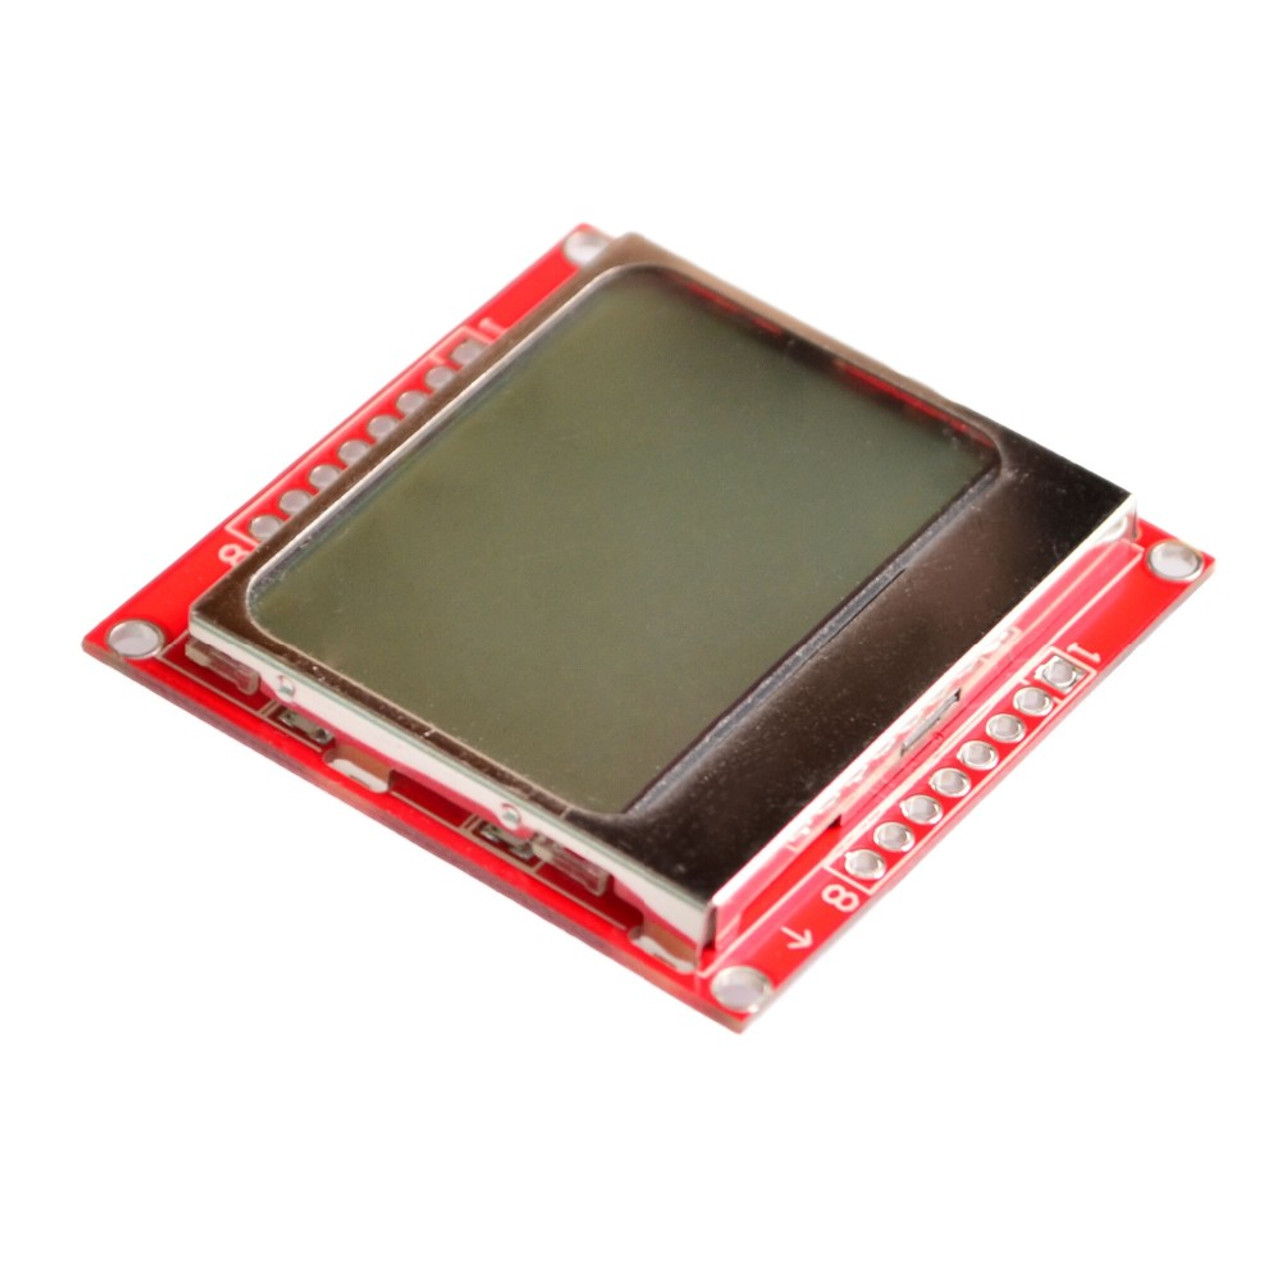 10PCS 84*48 Nokia LCD Module Board White Backlight Adapter PCB for Nokia 5110